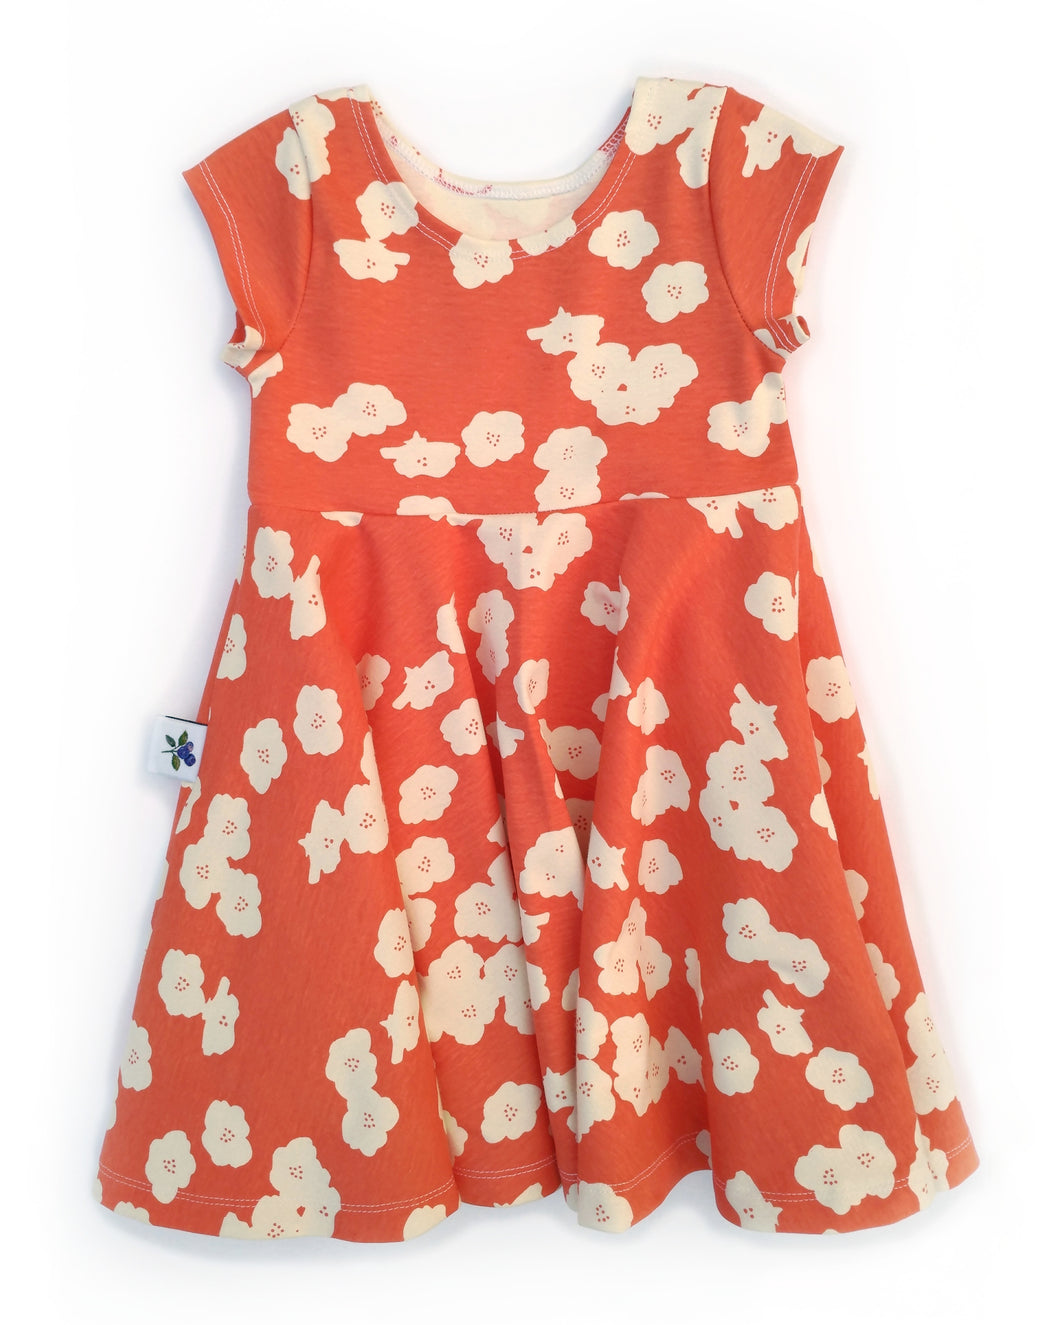 Infinity Dress - Coral Dreams - Organic Cotton Knit, sizes 9/12 months - 6 years